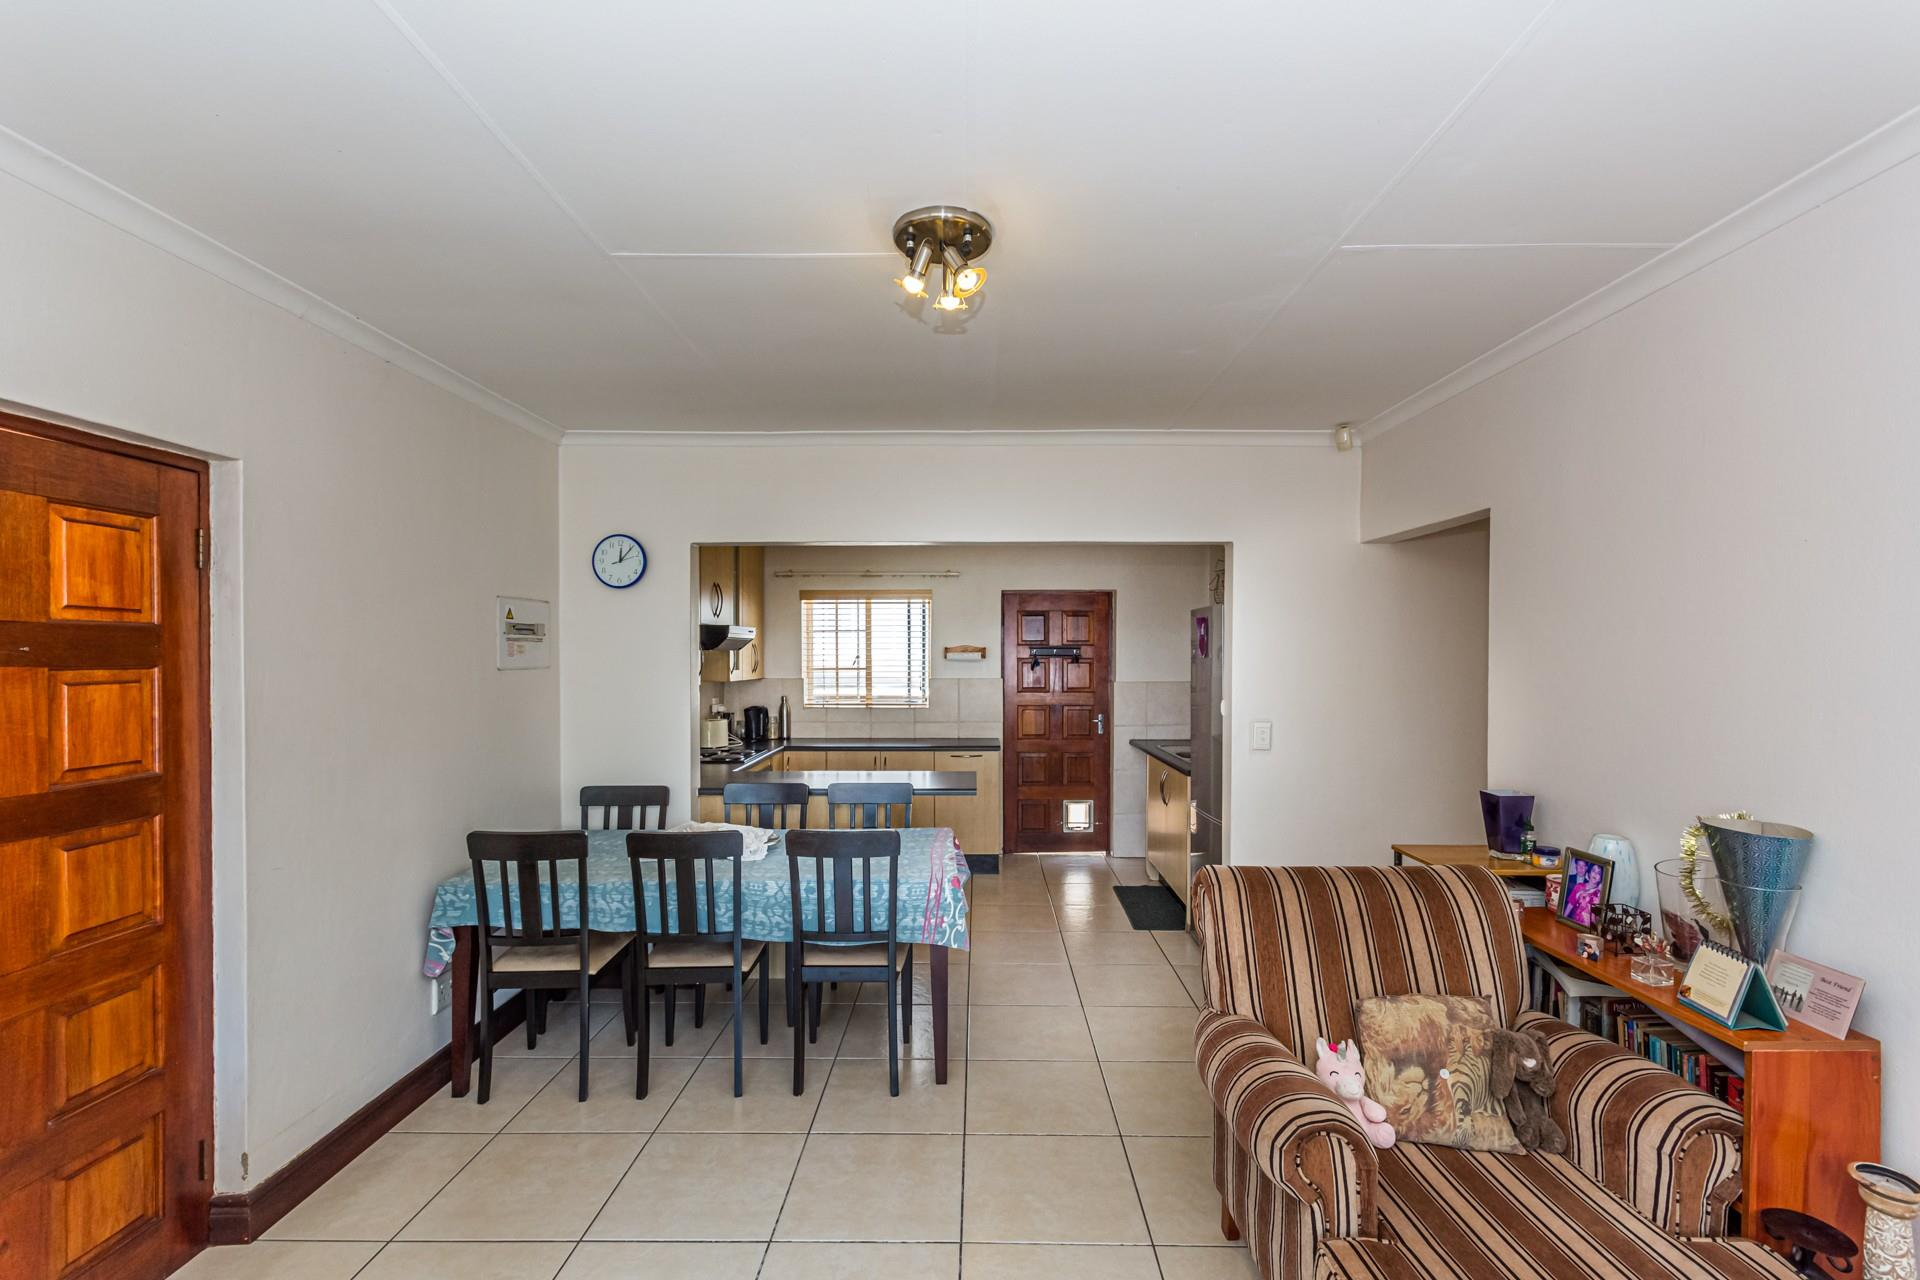 3 Bedroom House For Sale in North Riding